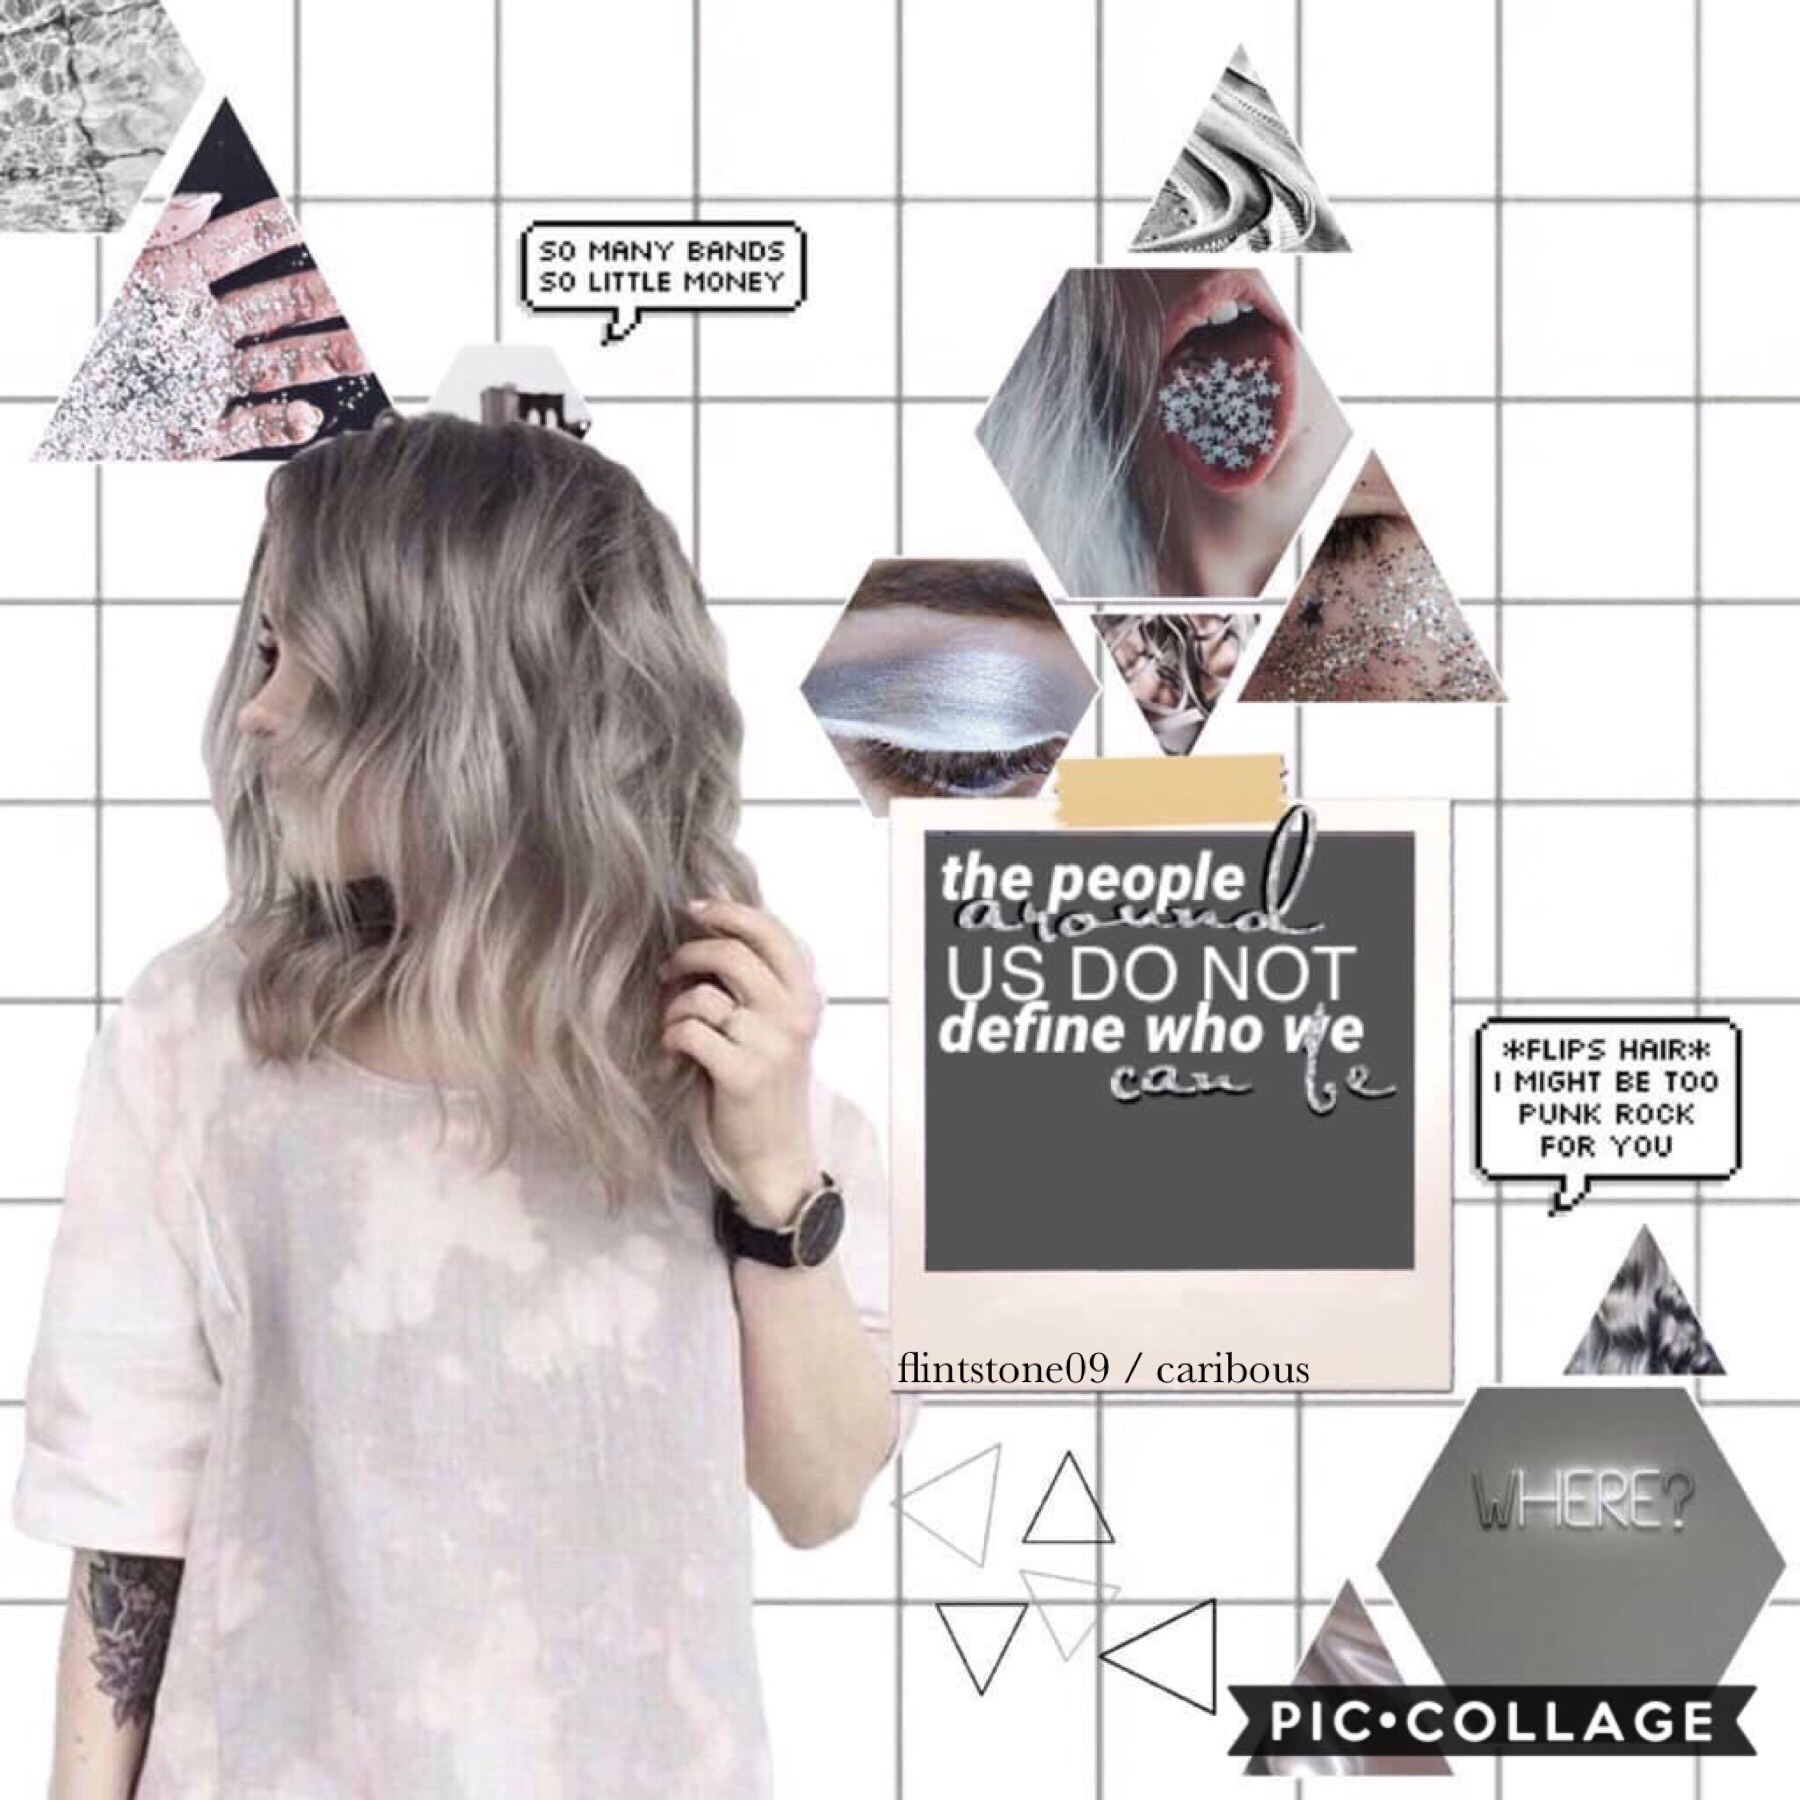 """8th post of theme. 👽TAP👽  Collab with———caribous!!🔥She is super good at text...as u can see😁 GO FOLLOW HER!! She was super sweet, even though I was being a noob at collabs😅 GRAY  no one does my question of the day anymore😭😂 QOTD: Do you spell """"gray"""" with"""